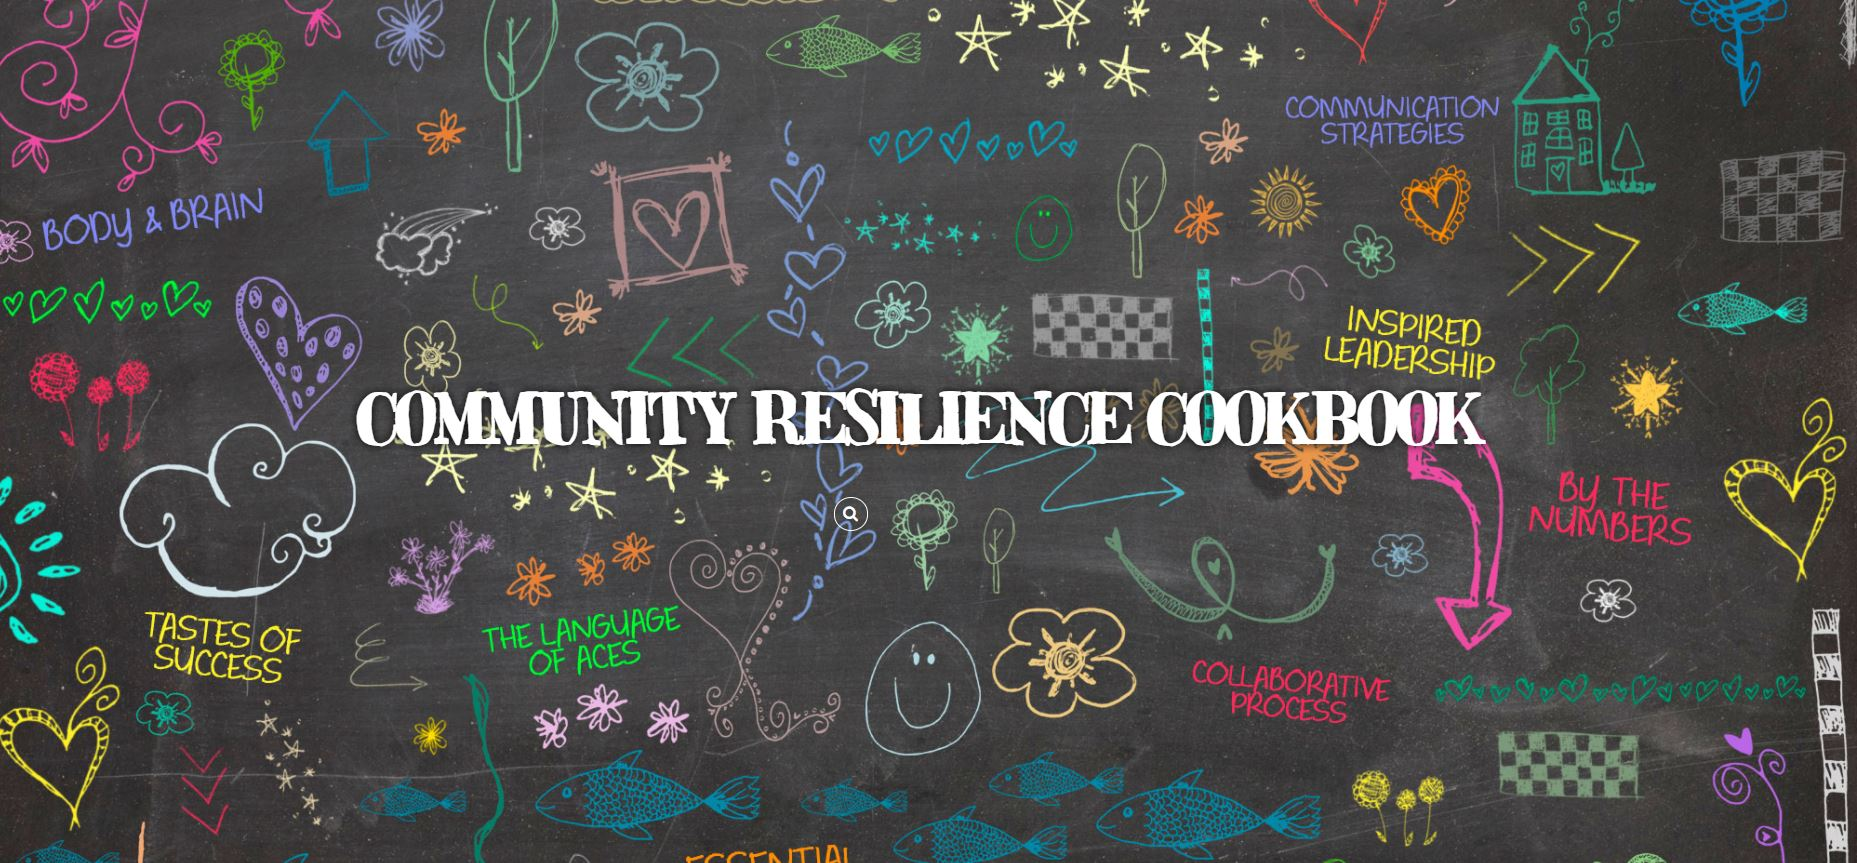 The Community Resilience Cookbook